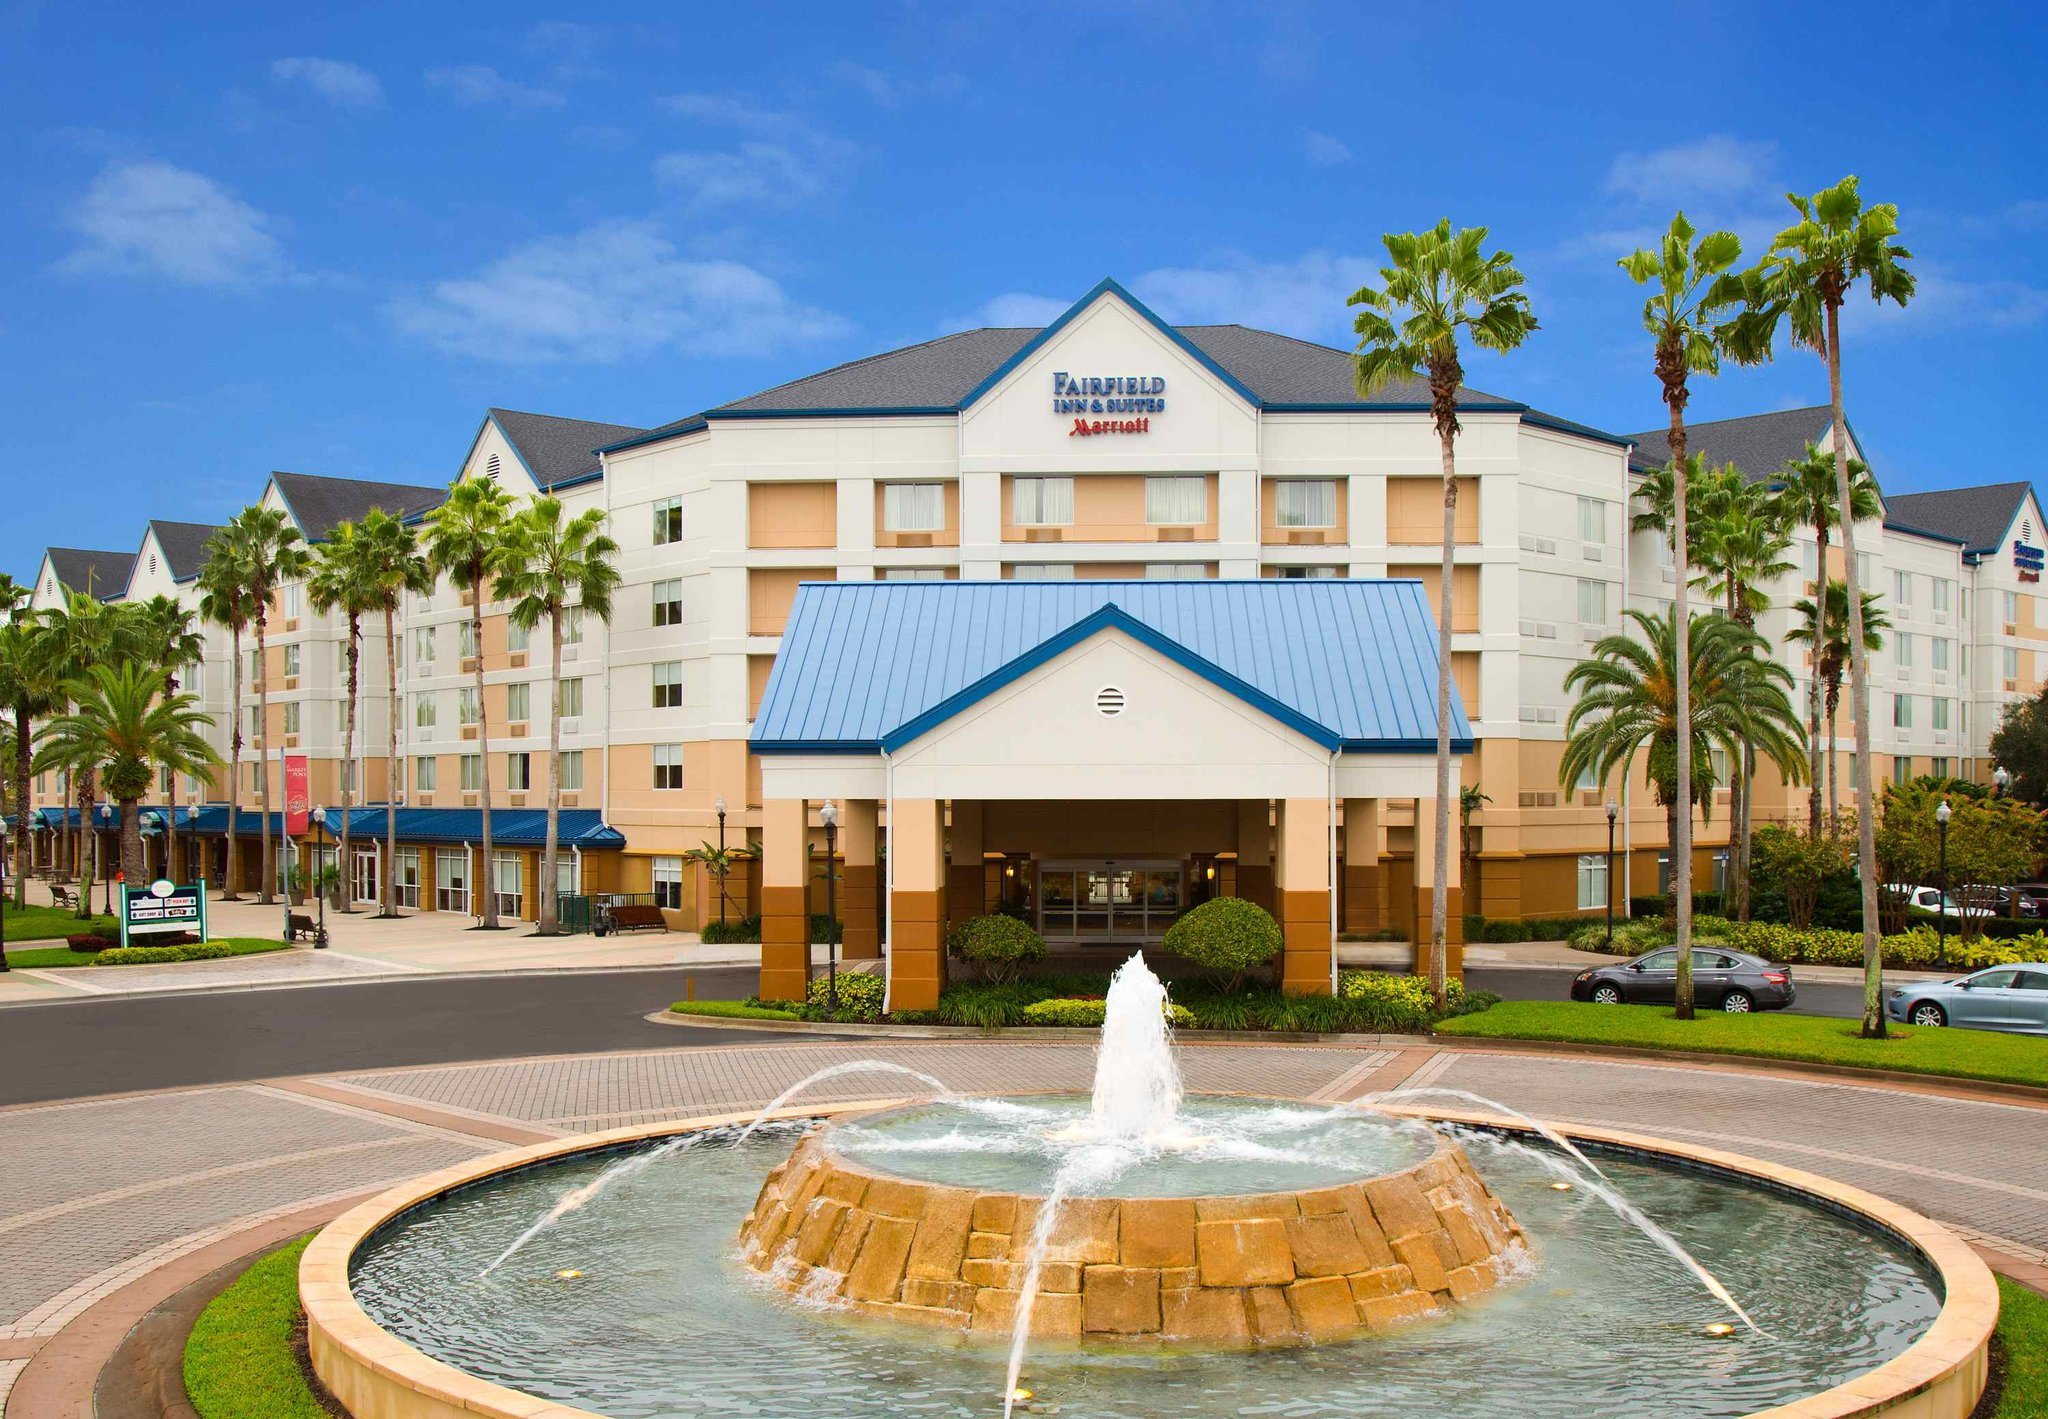 Fairfield Inn & Suites Orlando Lake Buena Vista in the Marriott Village